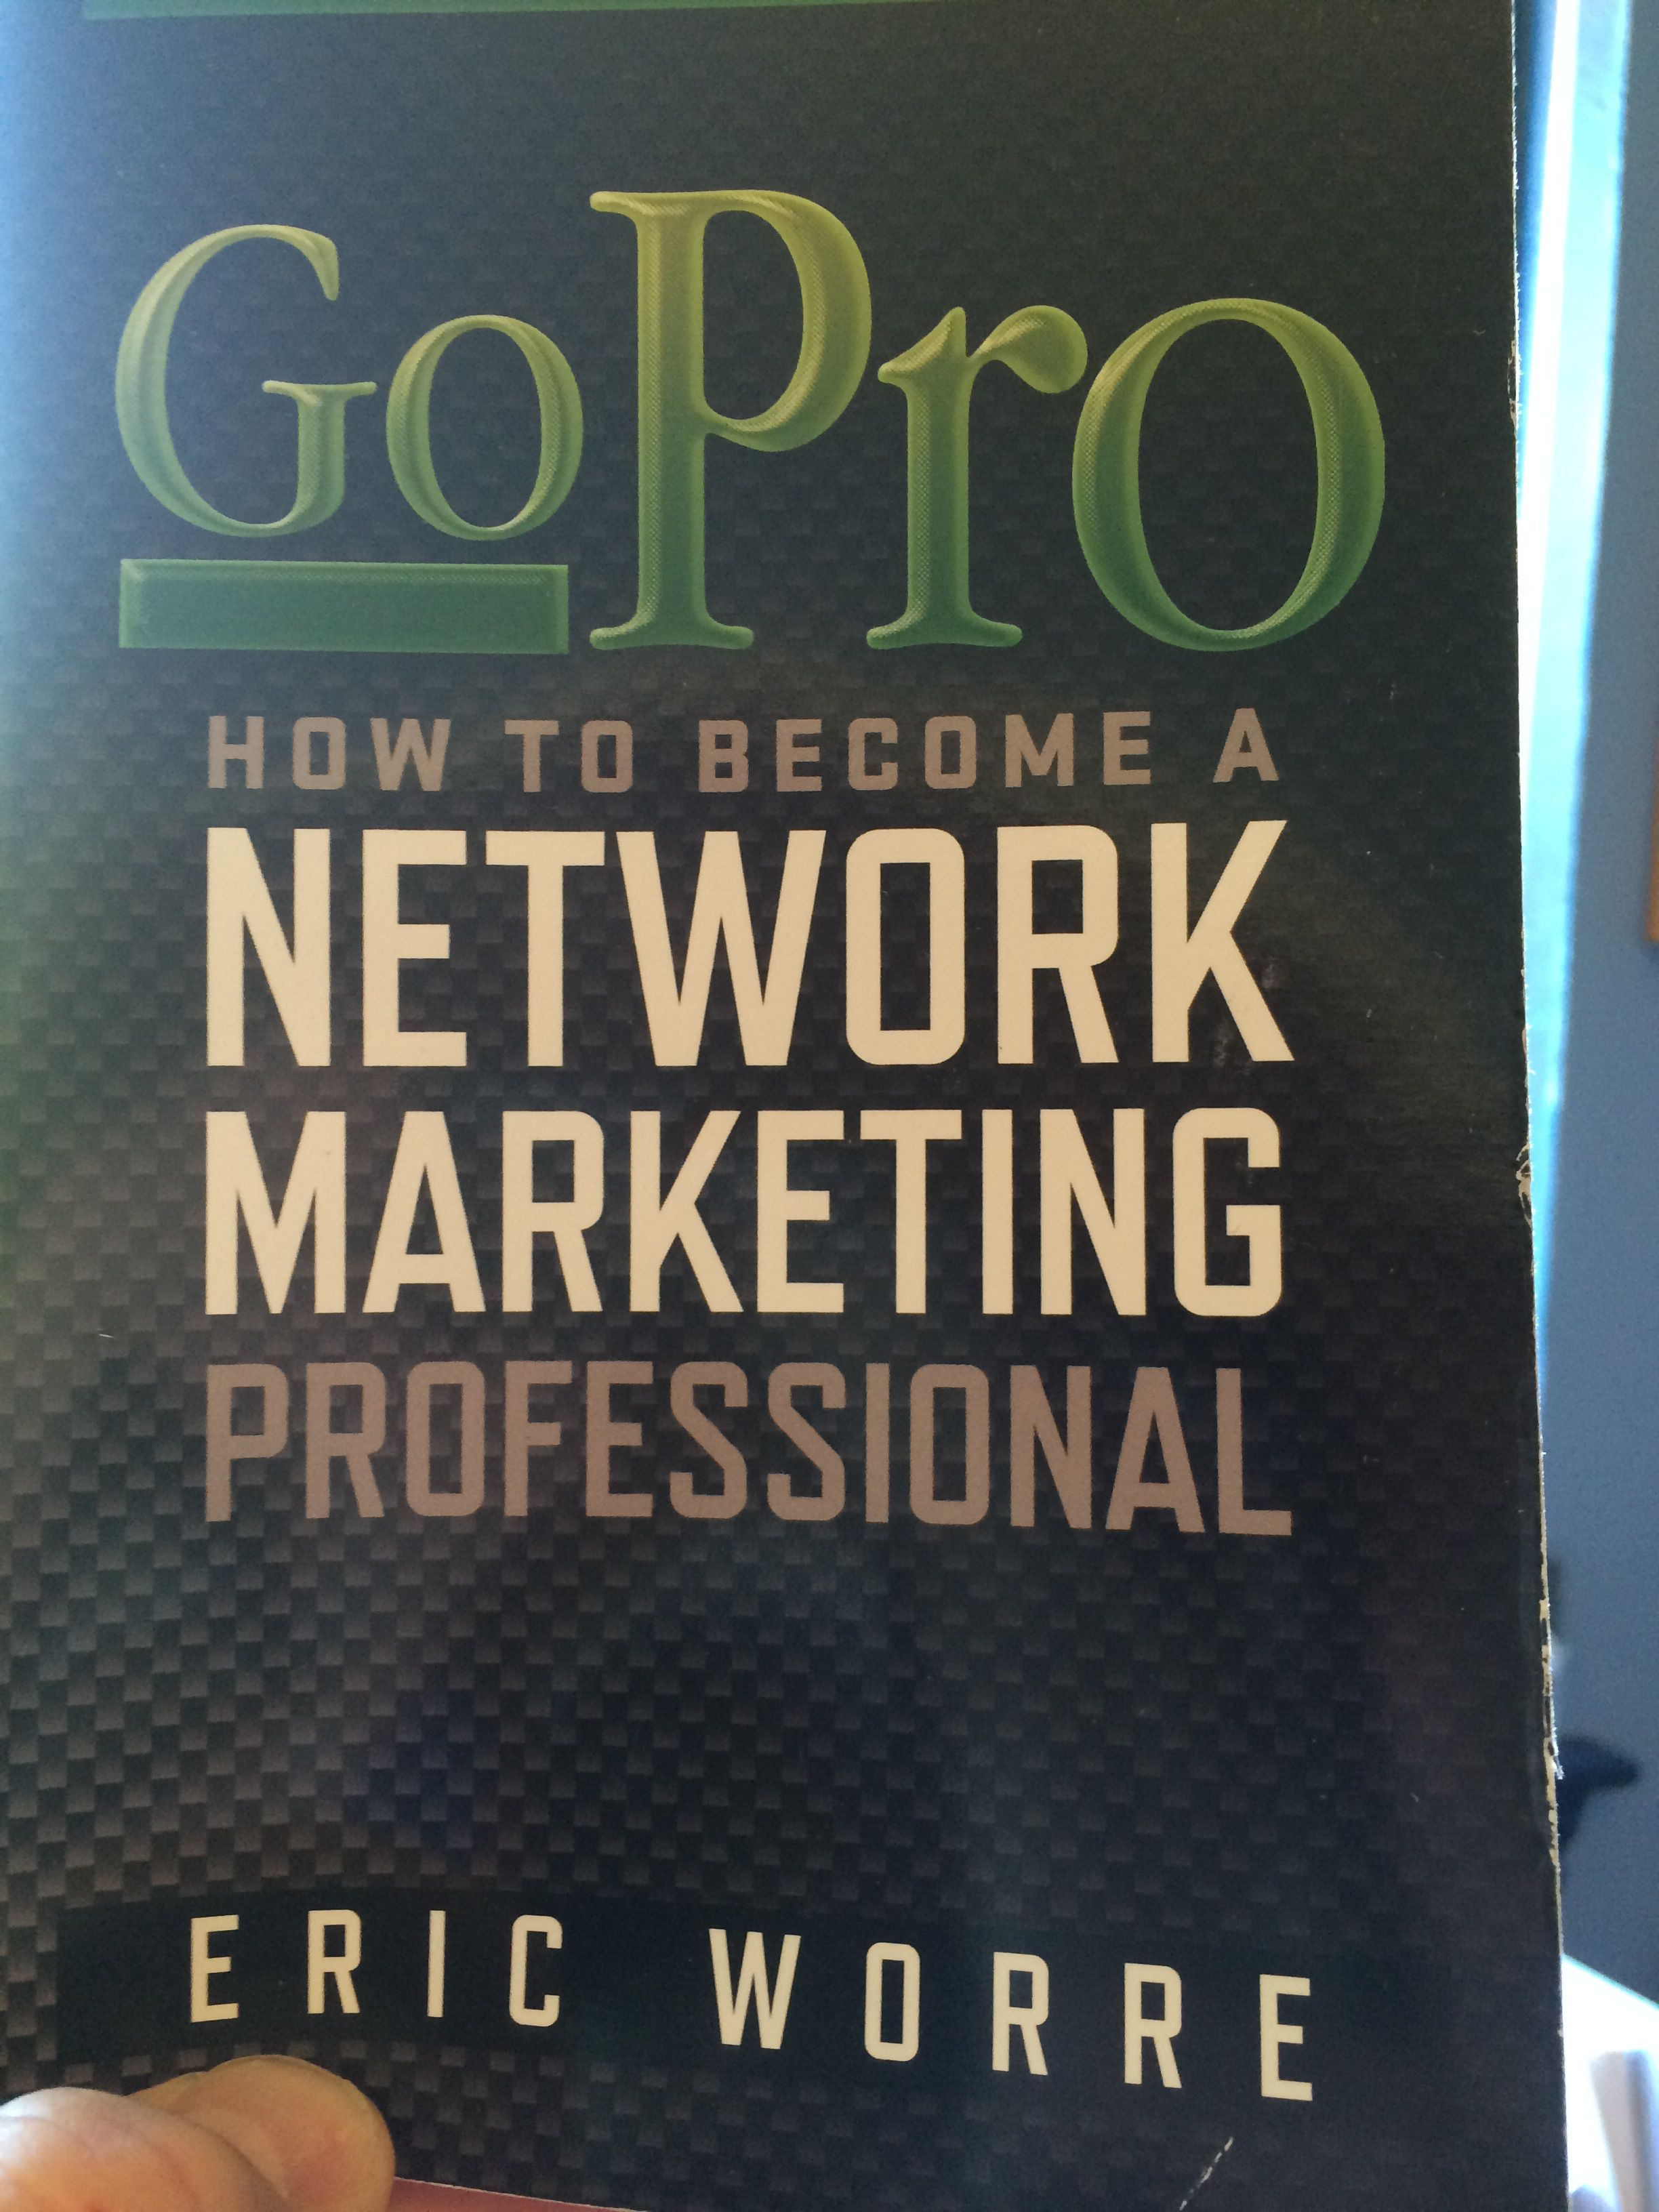 Get Go Pro By Eric Worre Life Changing Books Marketing